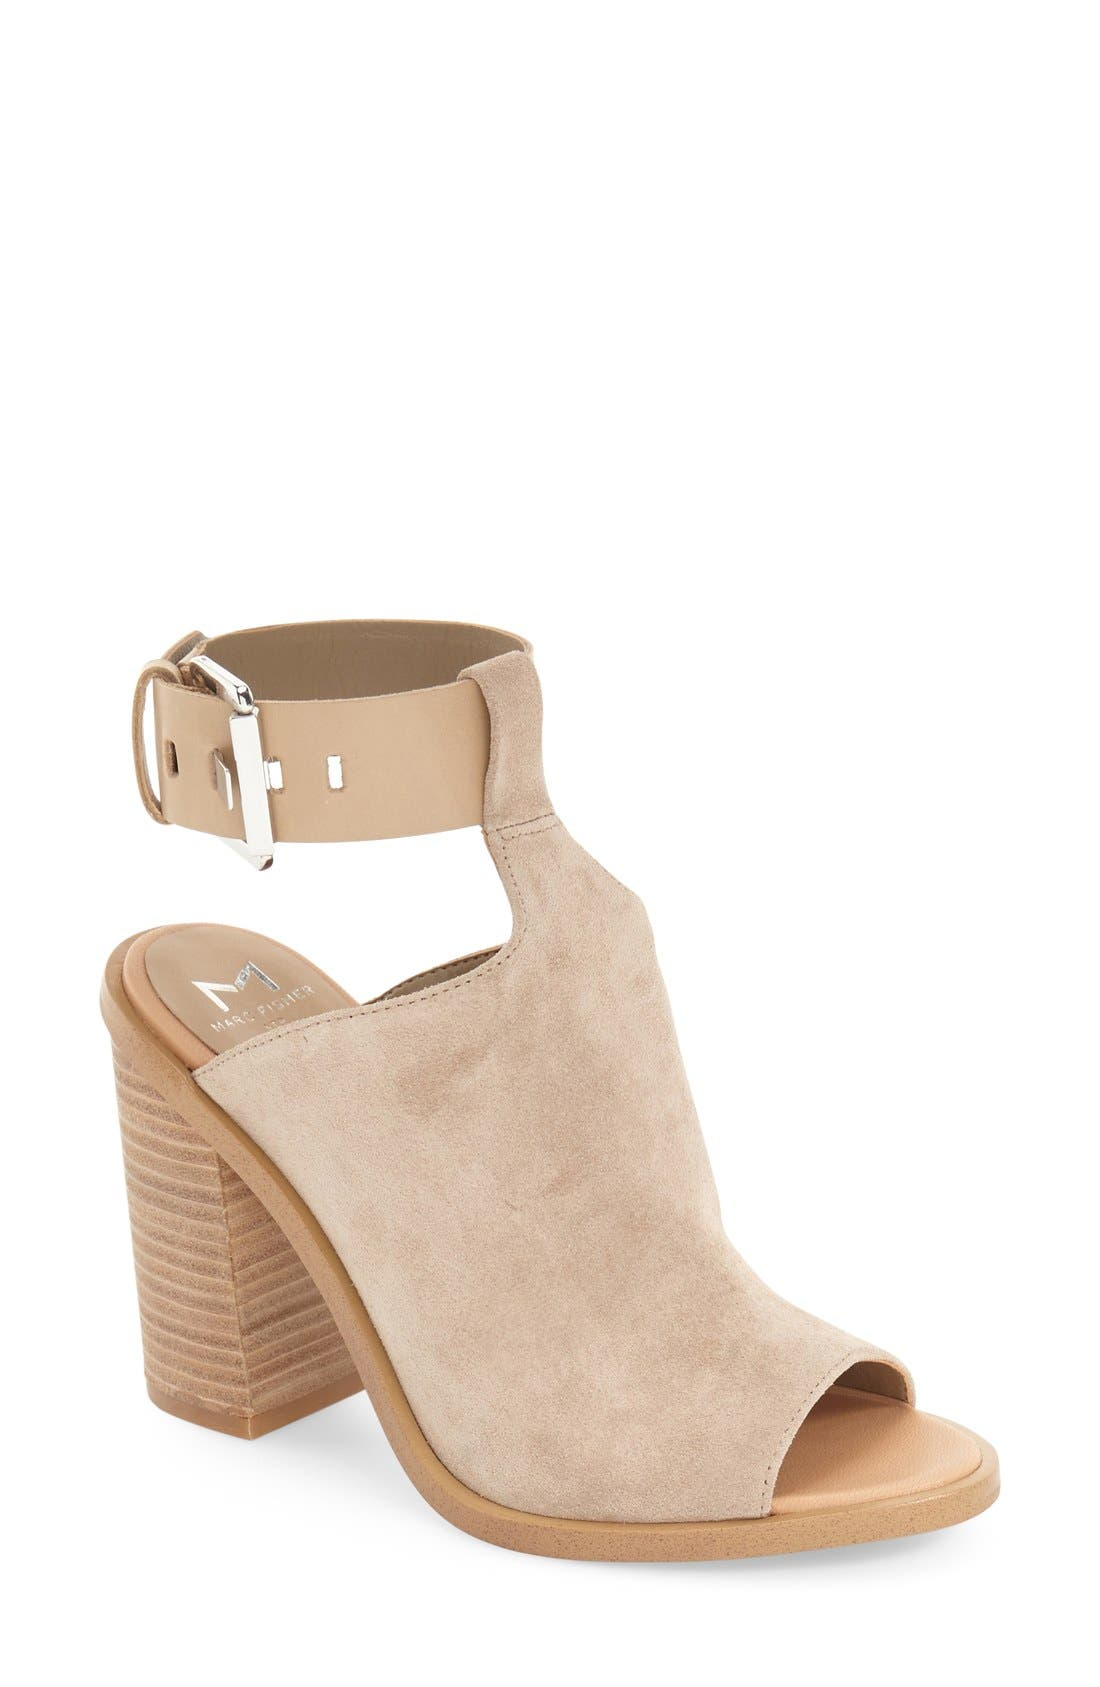 Alternate Image 1 Selected - Marc Fisher LTD Vashi Ankle Strap Sandal (Women)